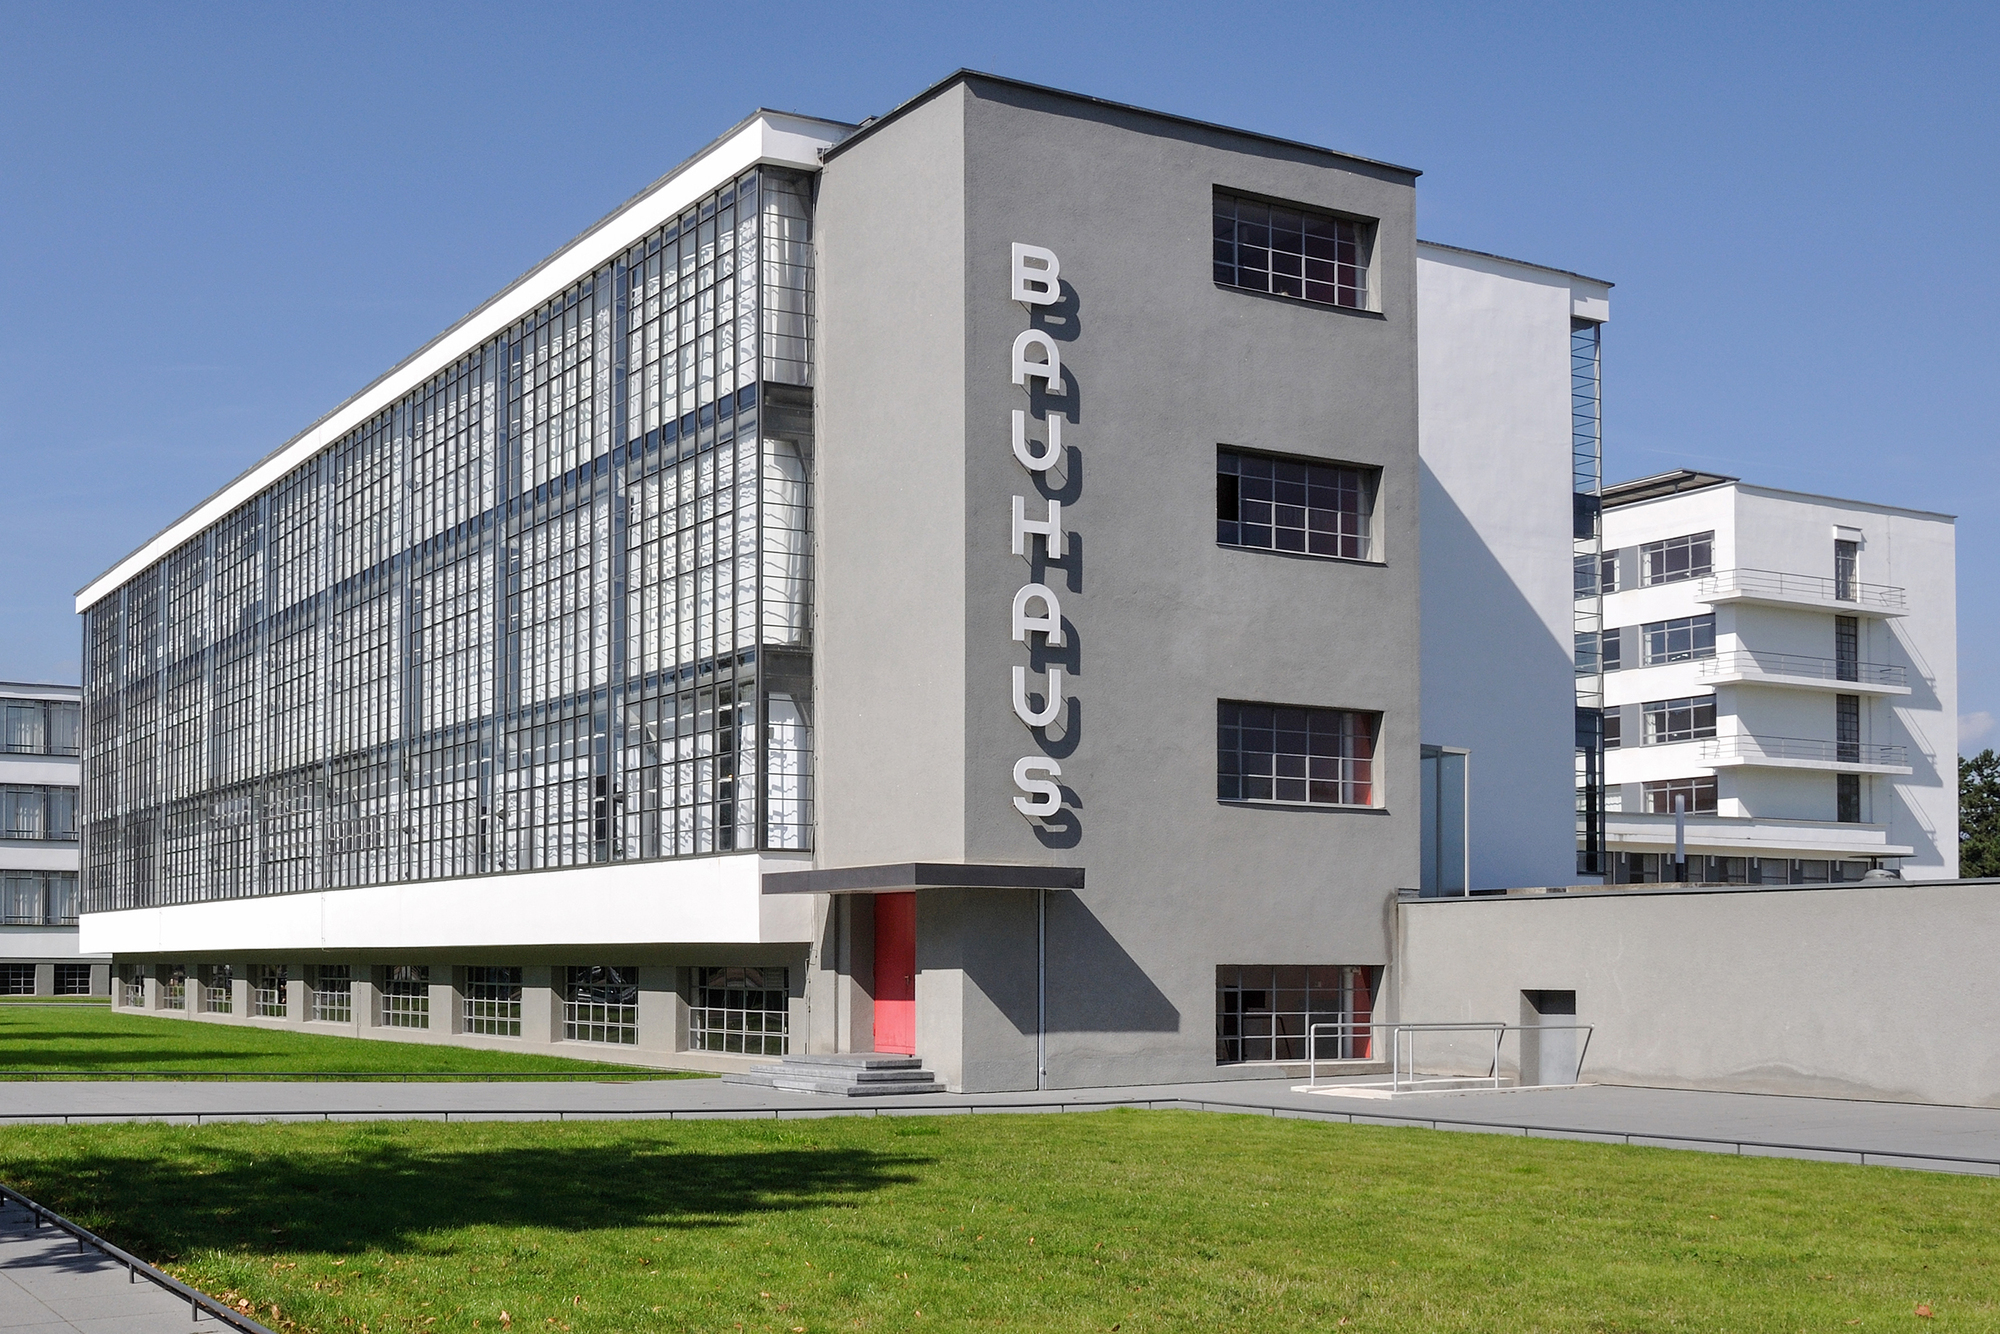 Part of the Bauhaus building at Dessau, Germany